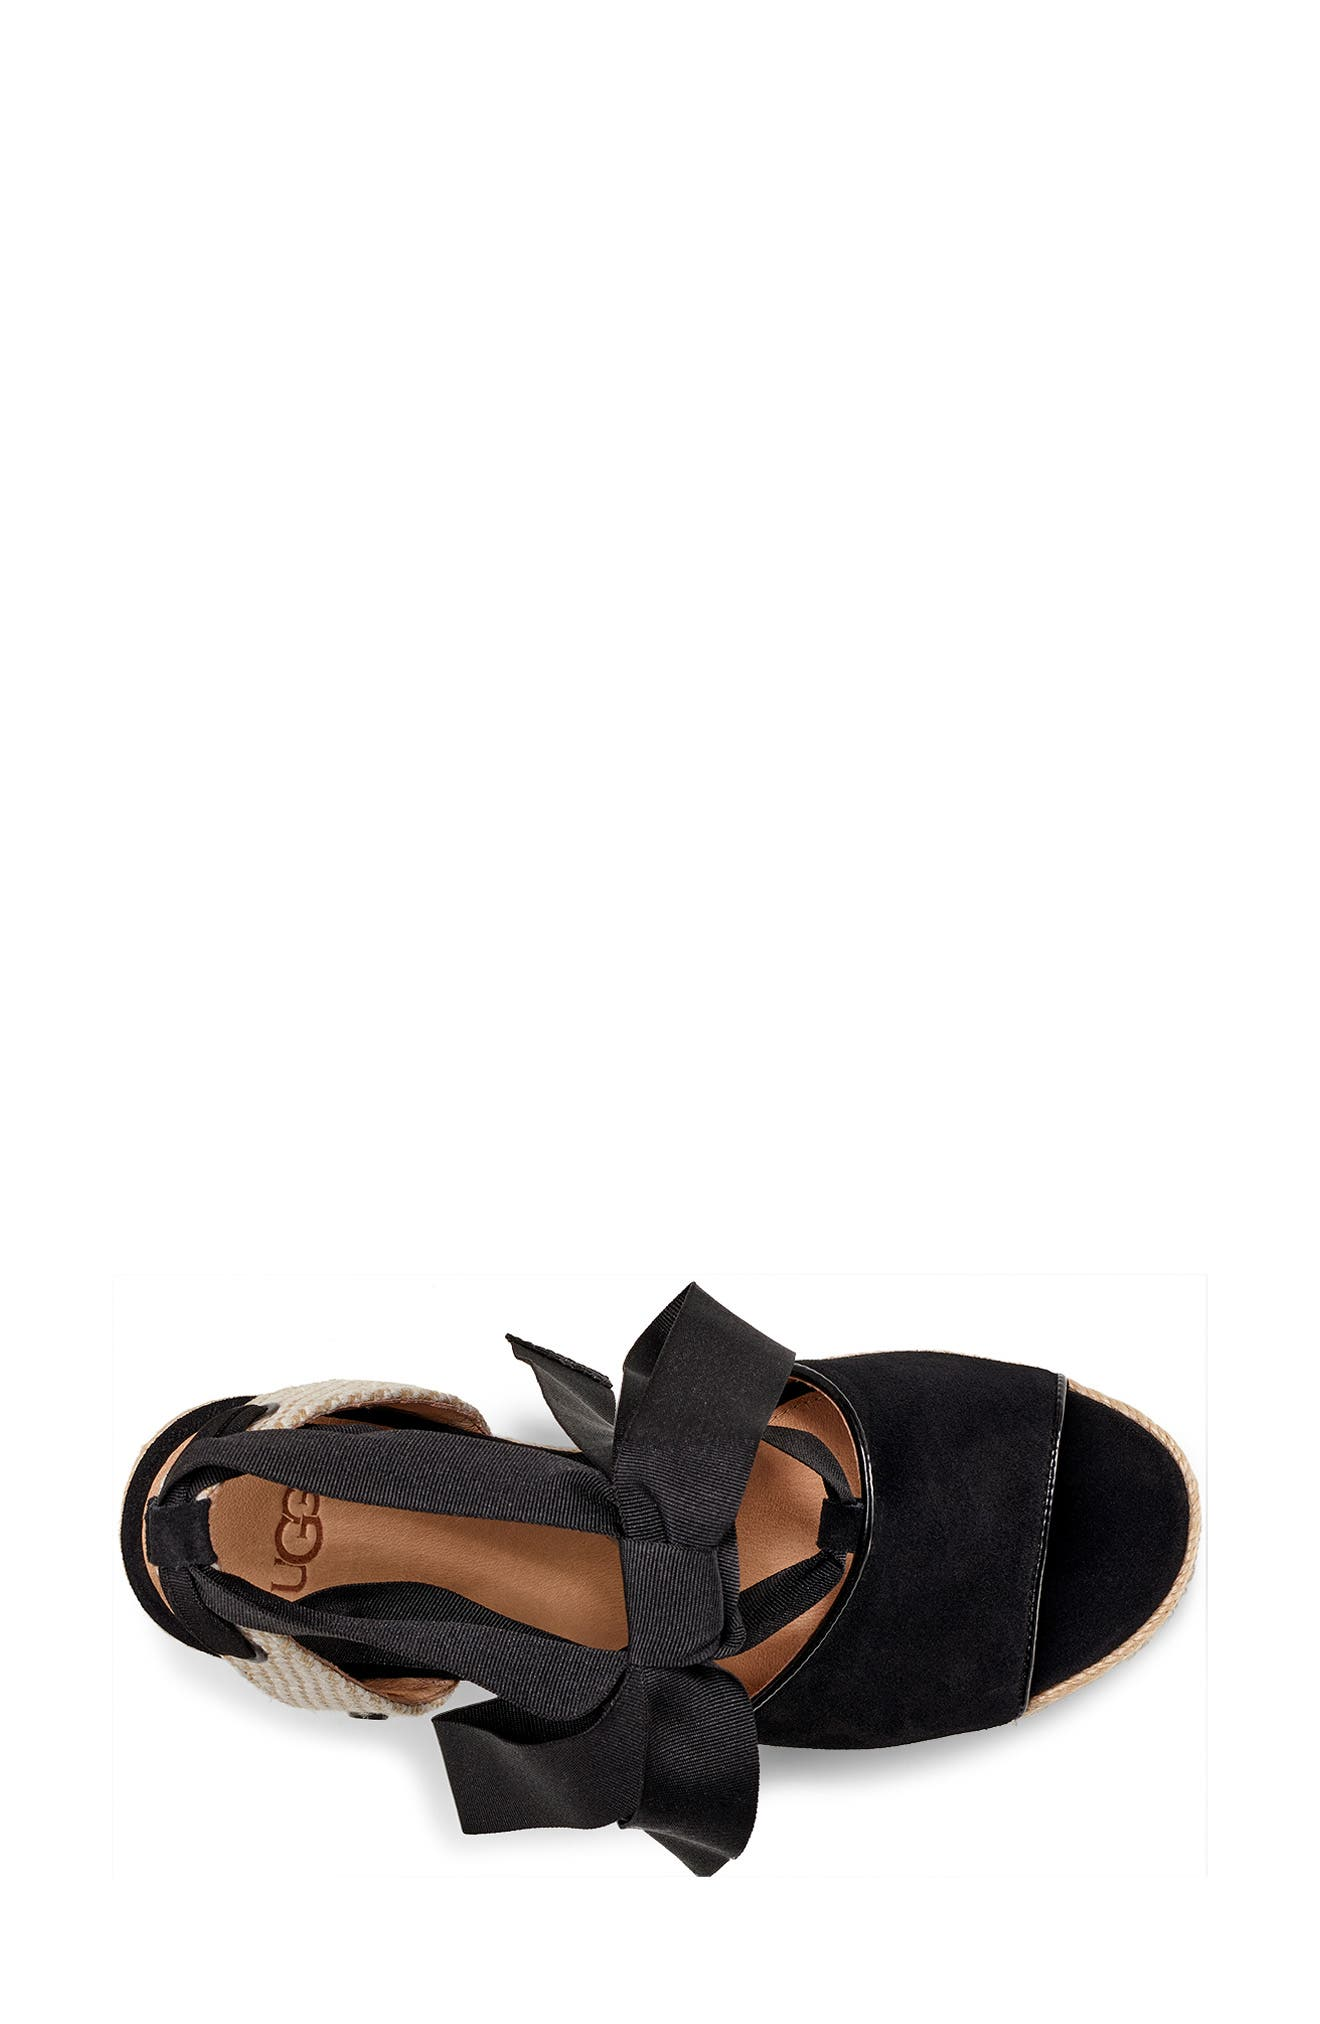 UGG<SUP>®</SUP>, Shiloh Wedge Sandal, Alternate thumbnail 4, color, BLACK FABRIC